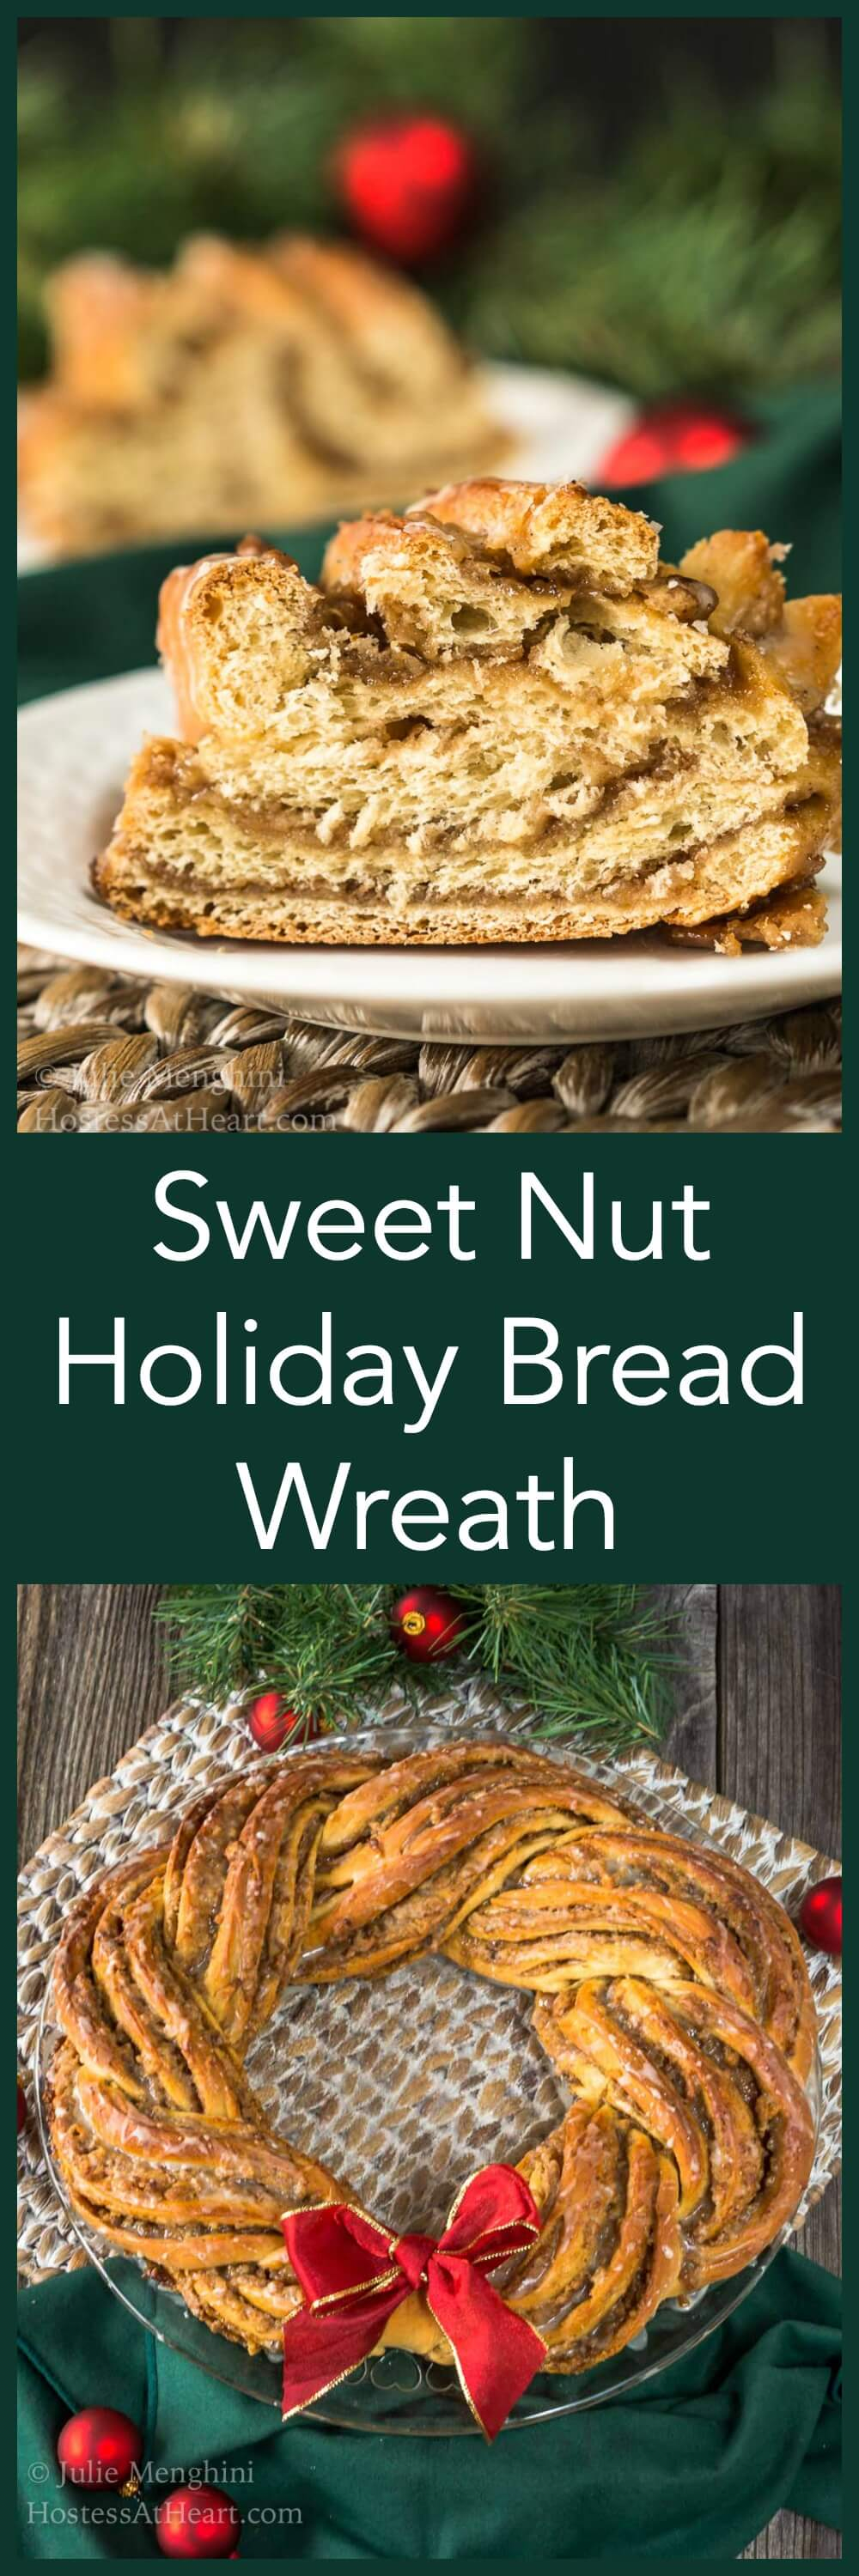 This Sweet Nut Holiday Bread Wreath makes a beautiful addition to your holiday table or a heartfelt gift for special family or friends.